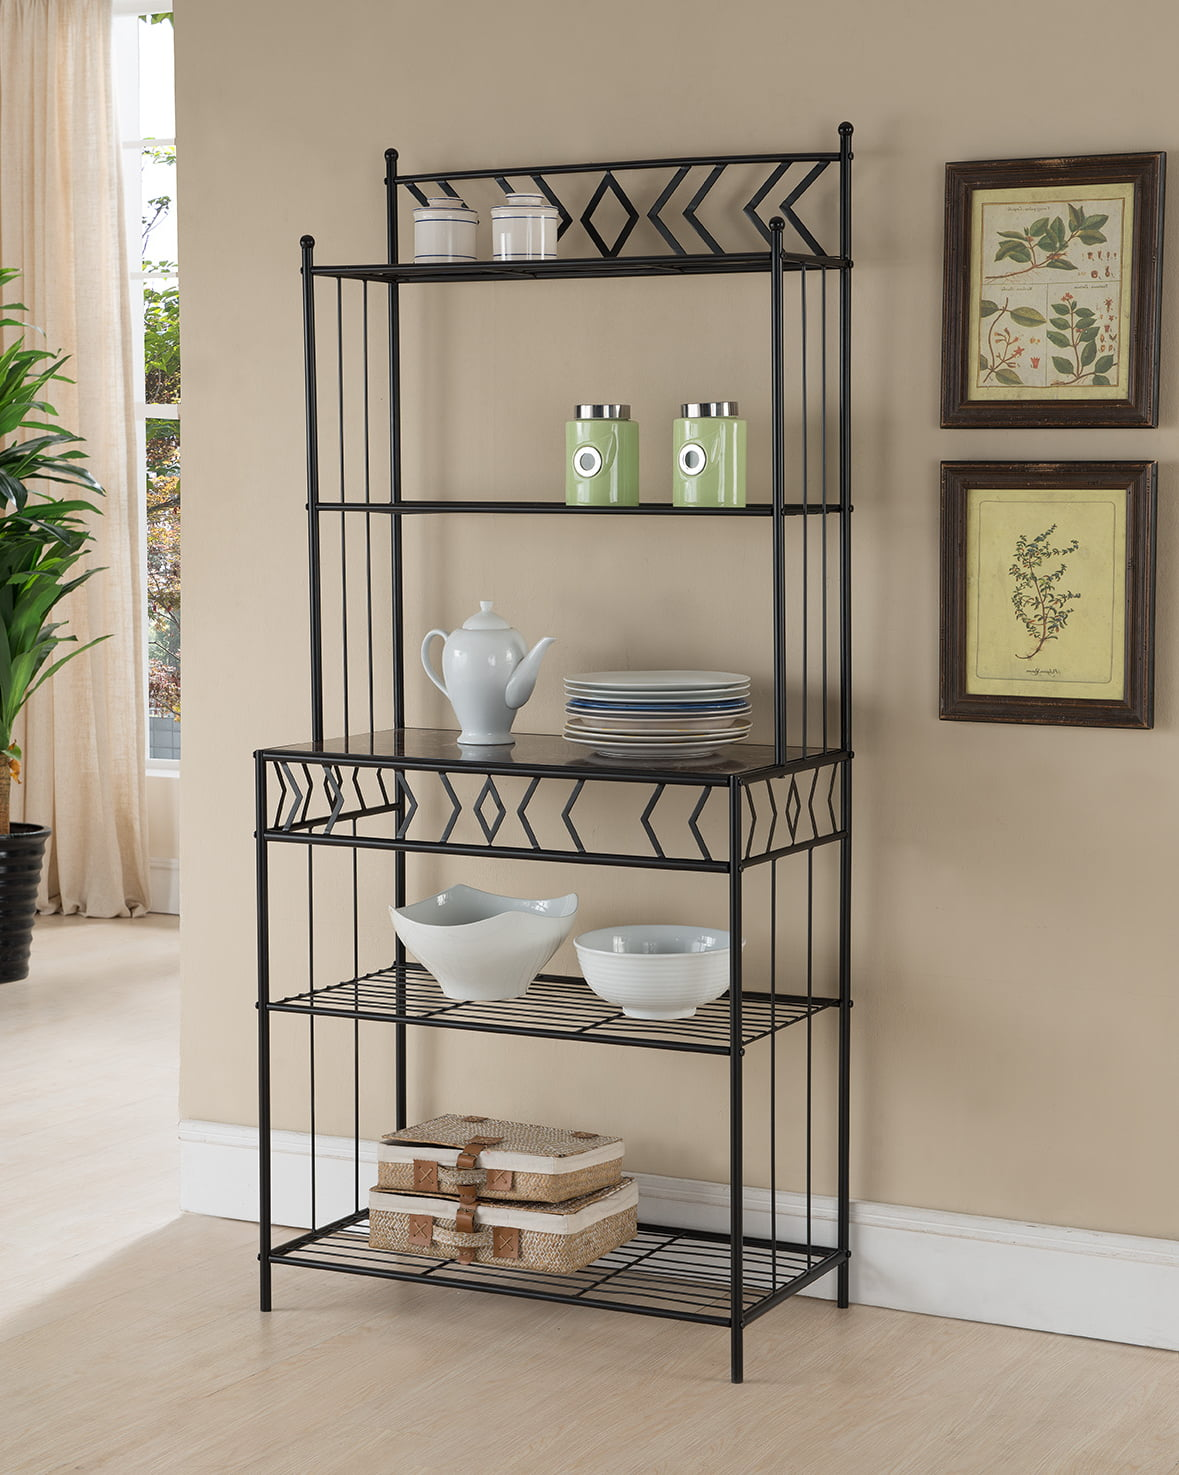 Black Metal & Wood Transitional 5 Tier Storage Kitchen Bakers Organizer Rack Display Stand by Pilaster Designs